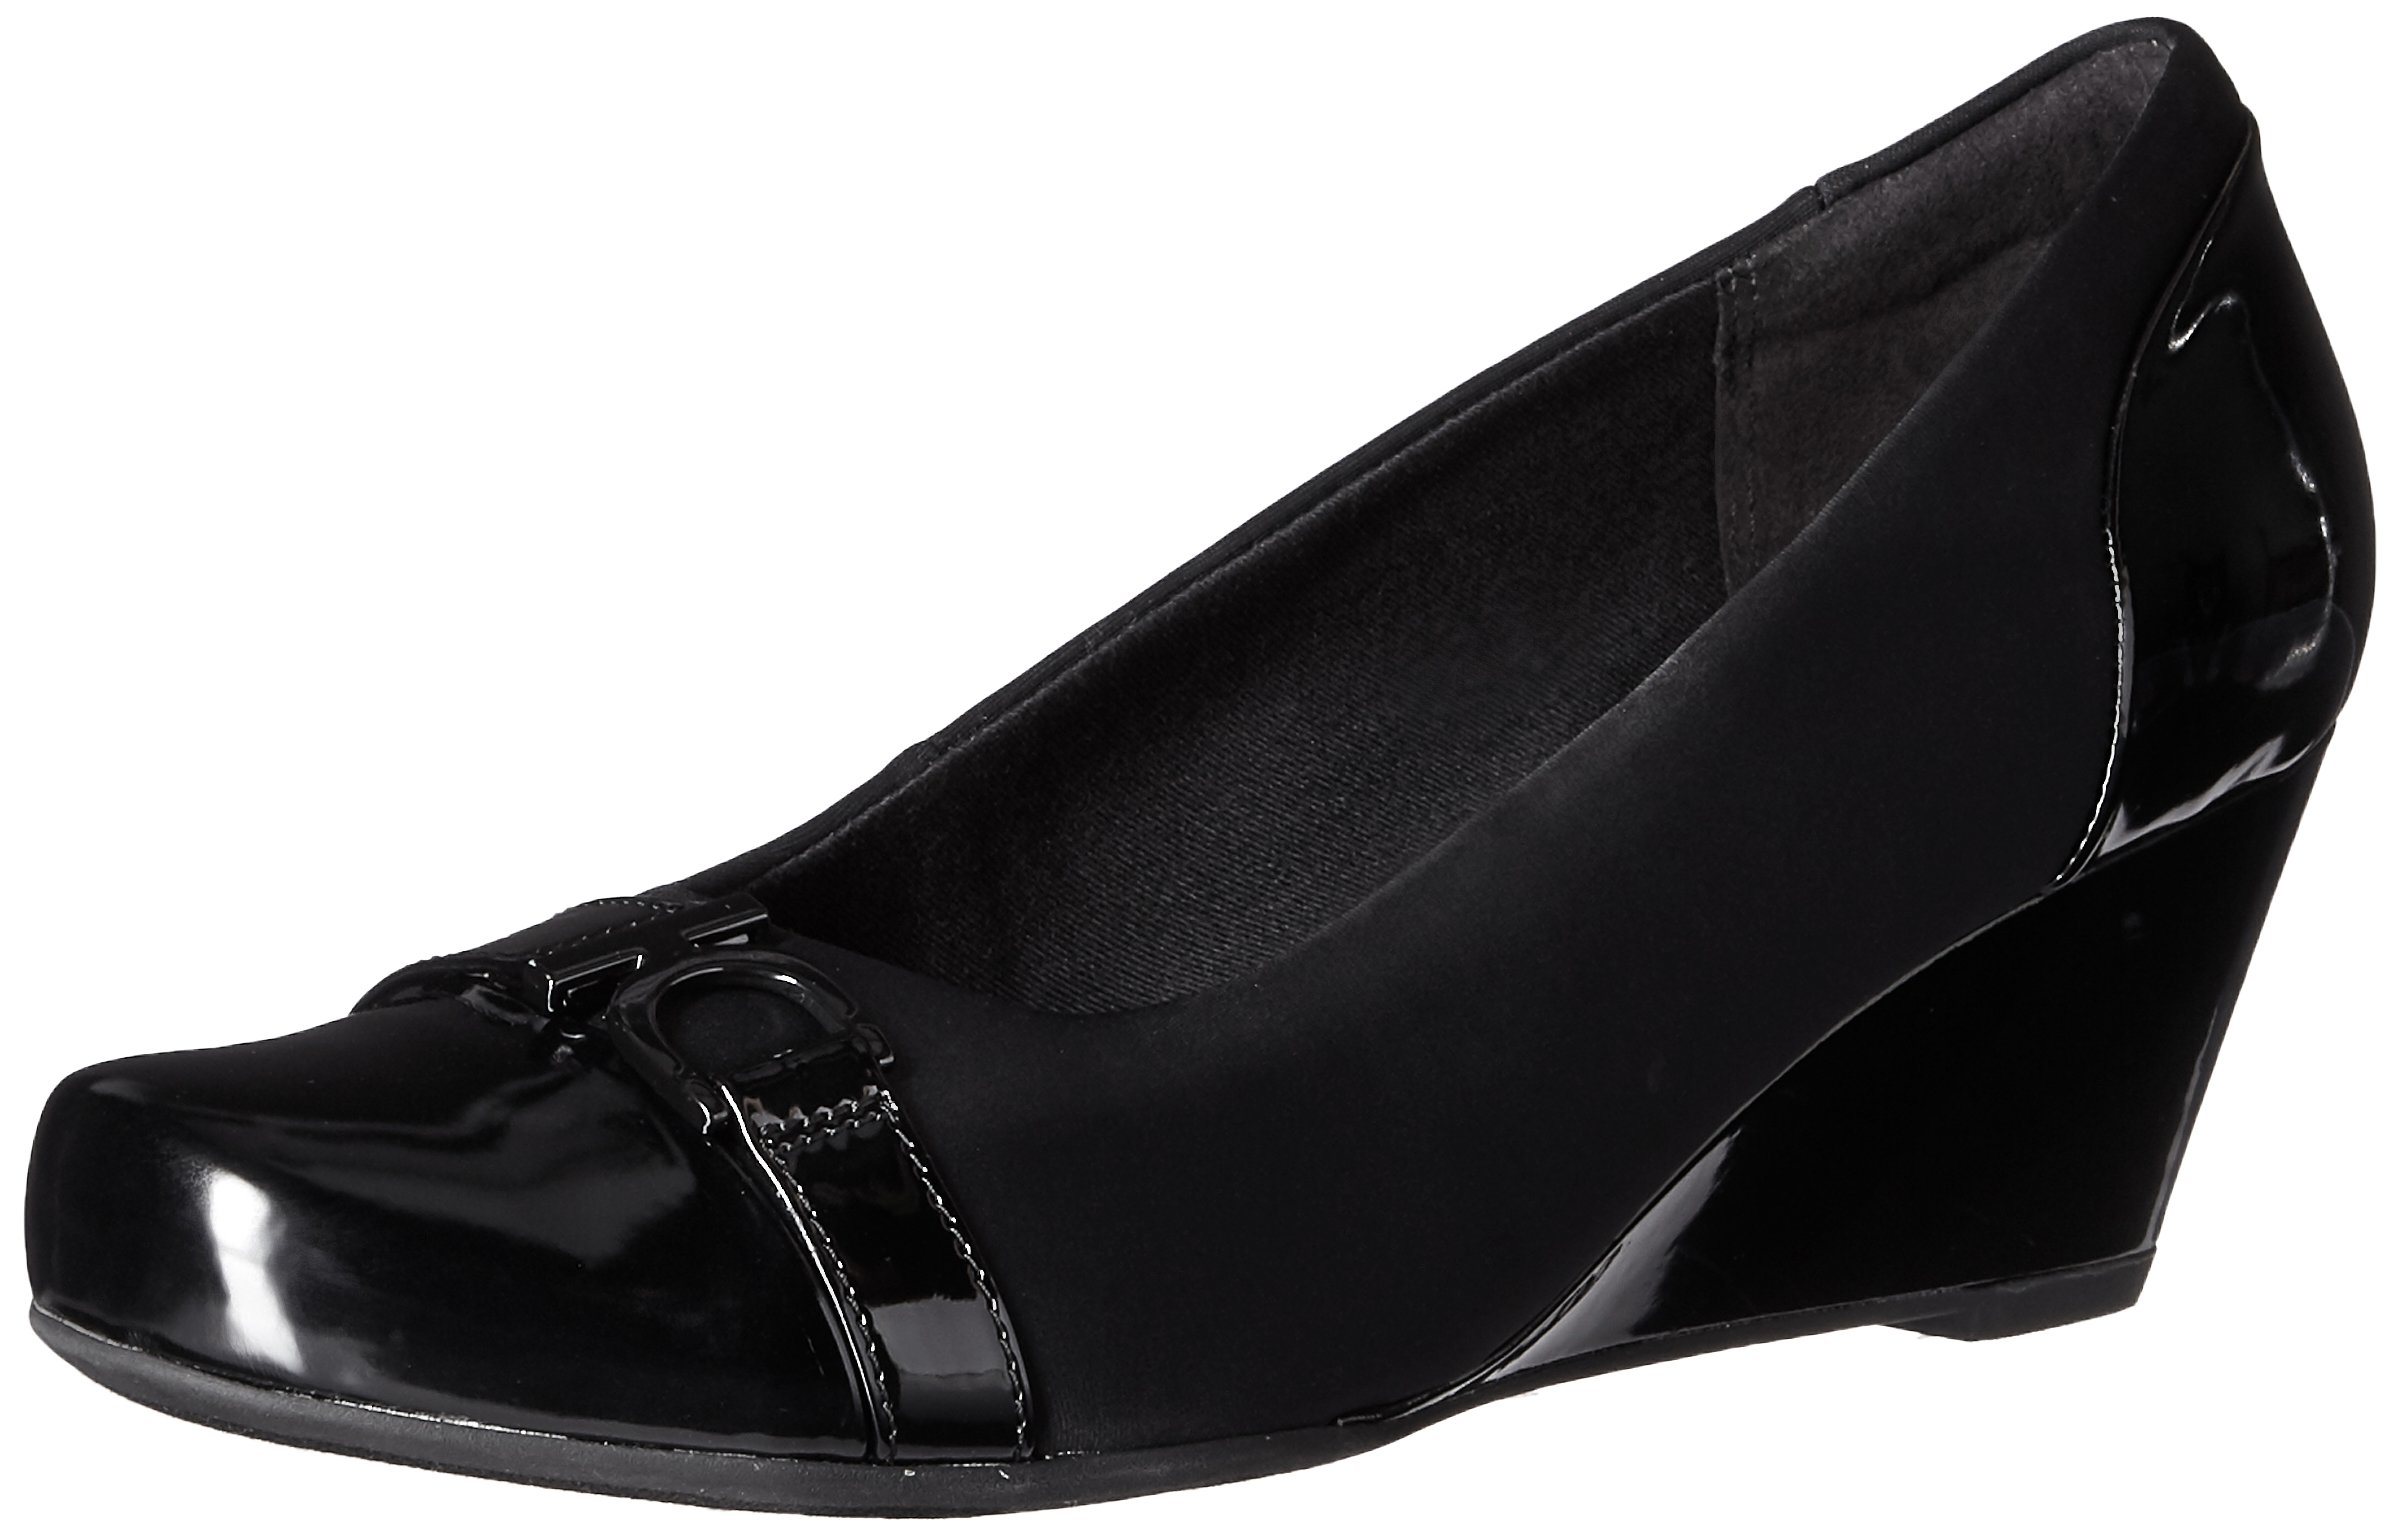 CLARKS Women's Flores Poppy Wedge Pump, Black Combi, 6.5 M US